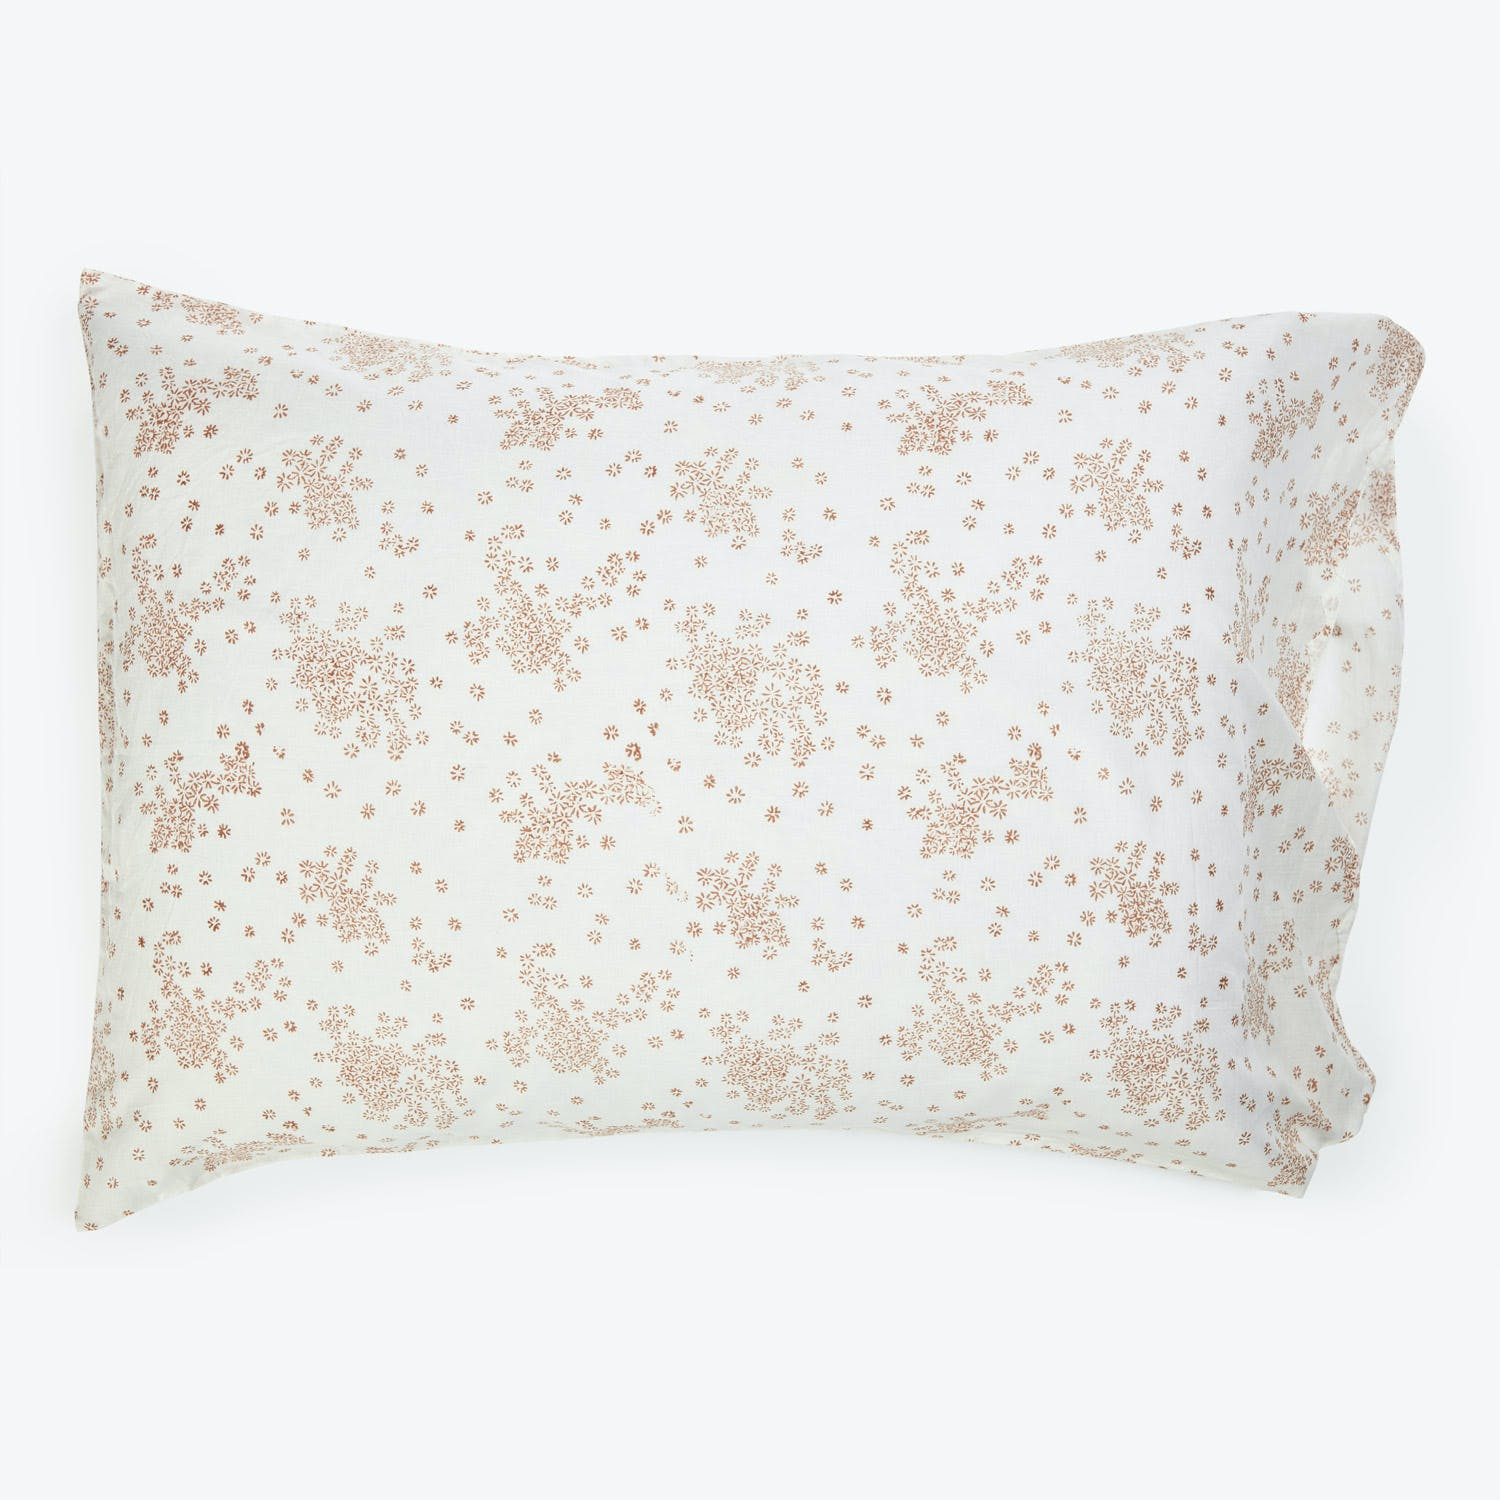 Product Image - Star Cotton Voile Pillowcase Coral